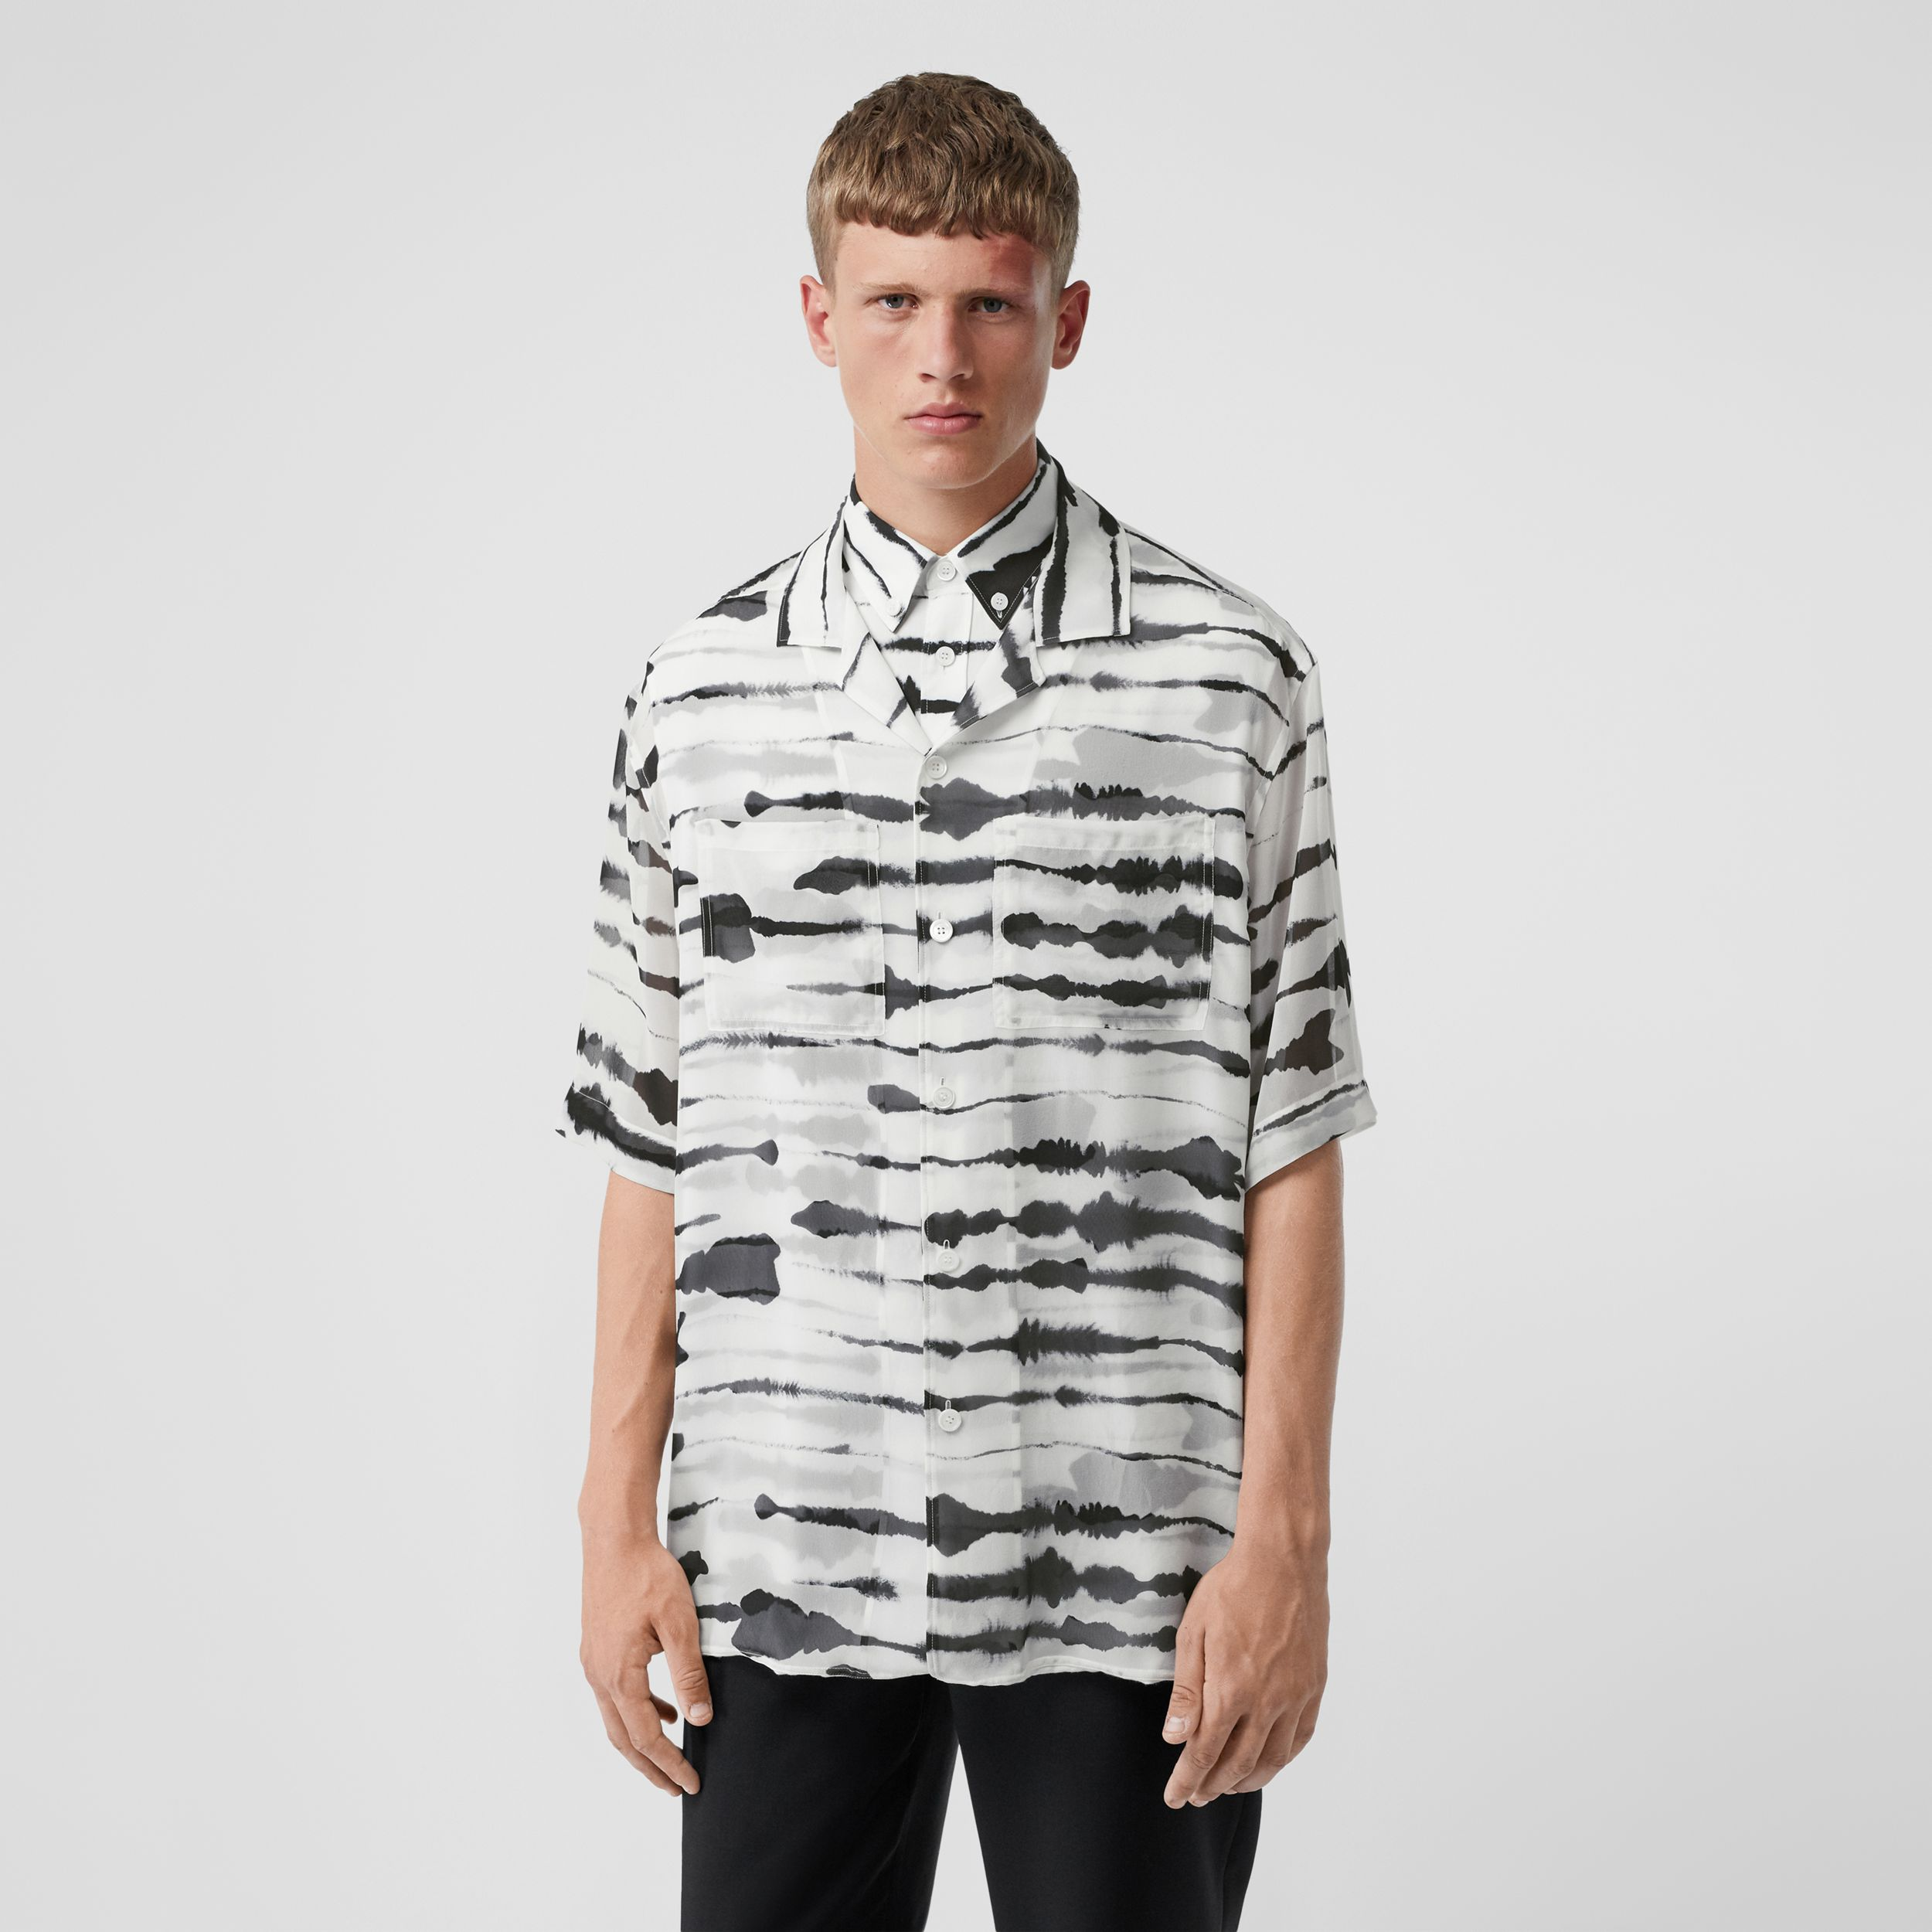 Short-sleeve Silk Overlay Watercolour Print Twill Shirt in Monochrome - Men | Burberry - 1